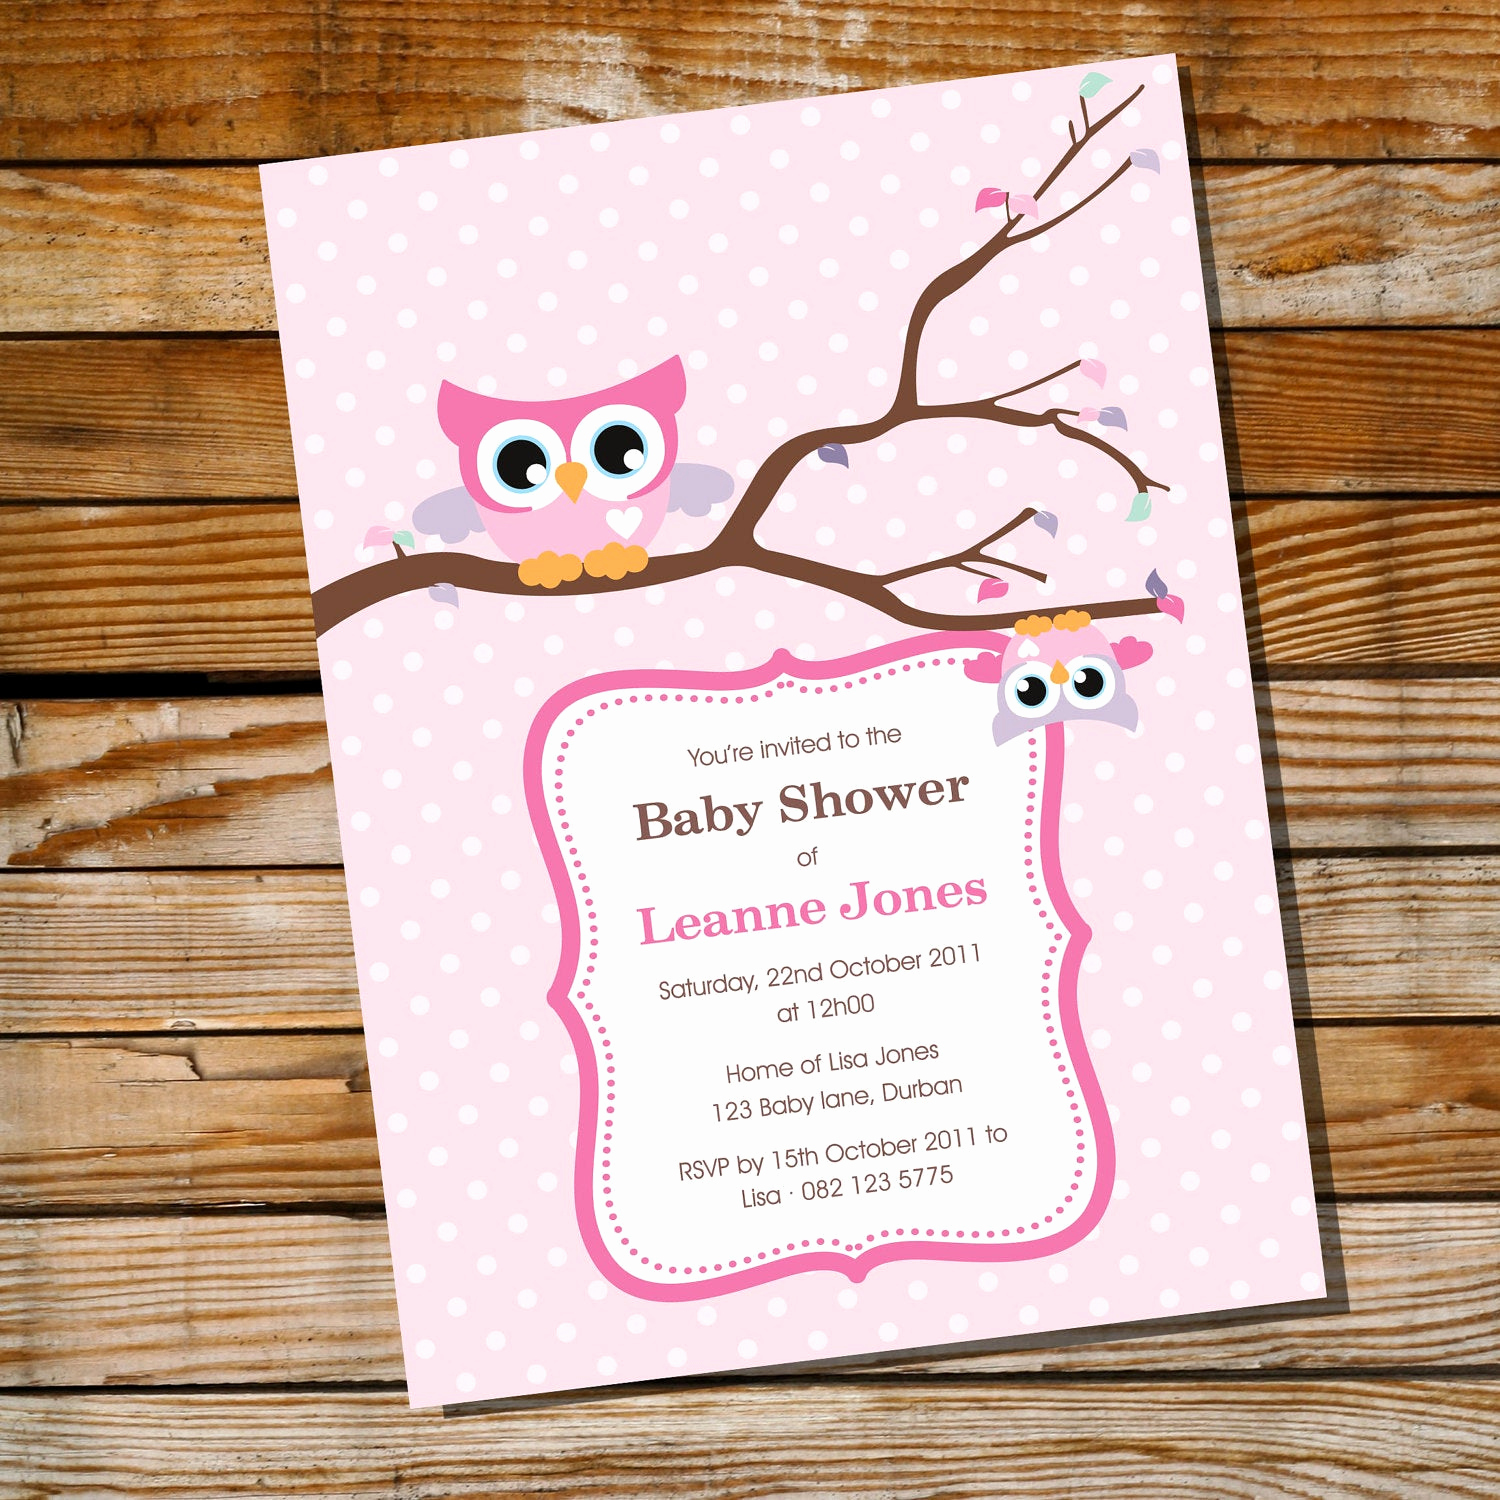 Baby Shower Invitation for Girls Luxury Cute Baby Owl Invitation for A Girl Baby Shower Instantly